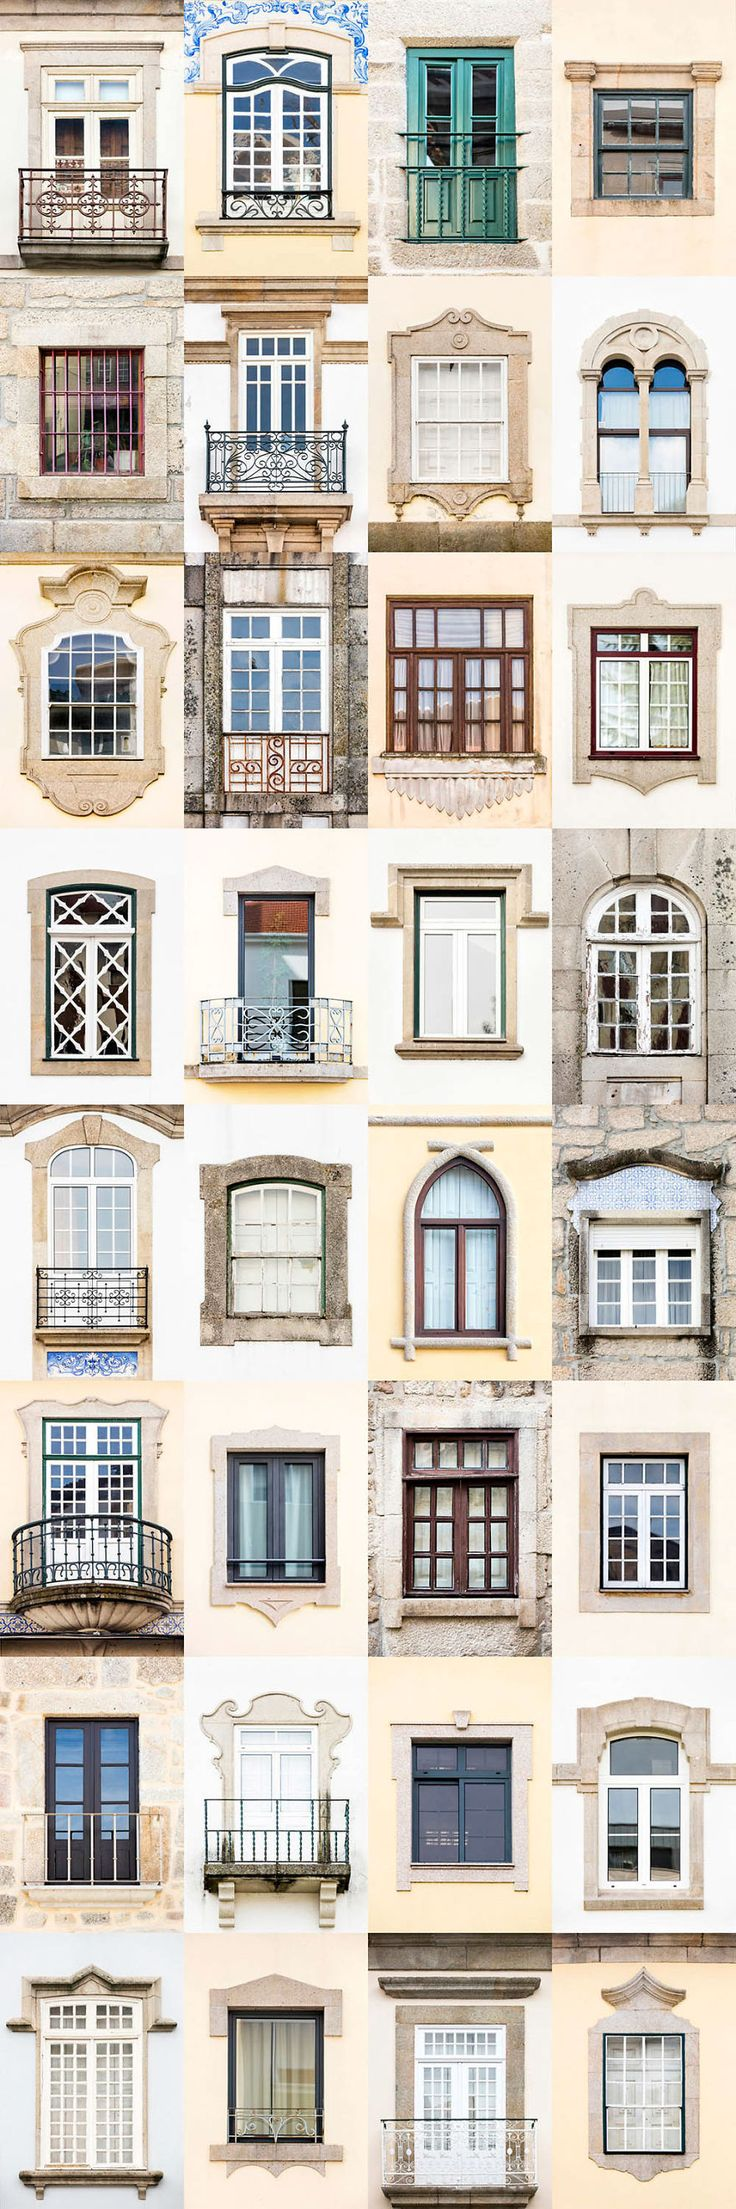 I Traveled All Over #Portugal To Photograph Windows, And Captured More Than 3200 Of Them - via BoredPanda 23-10-2017 | If you are planning a trip to Portugal, you can see which are the most beautiful cities to visit or what kind of architecture you like the most. Photo: Viseu